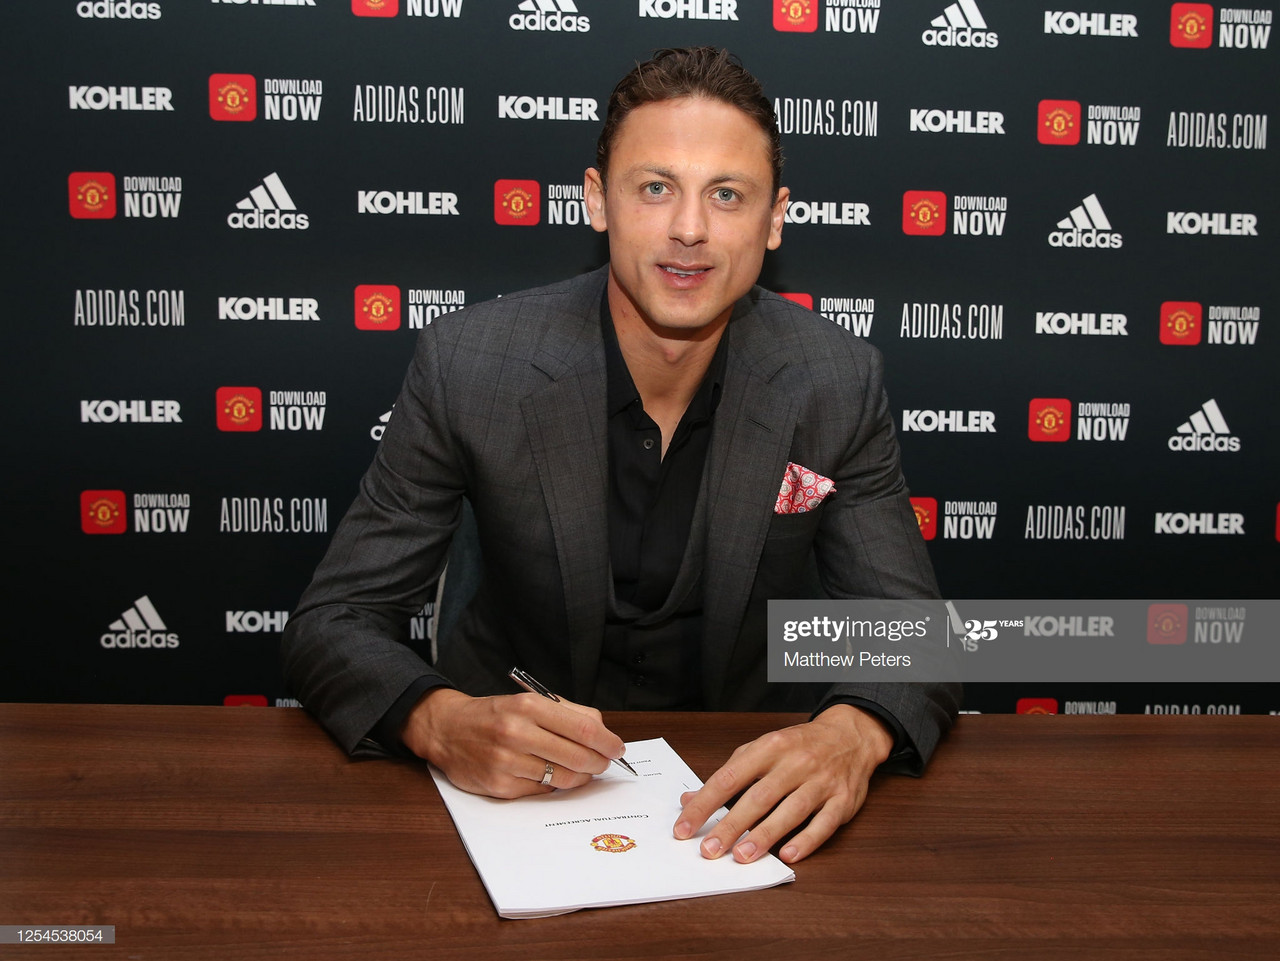 Why have Manchester United offered Nemanja Matic such a long contract?